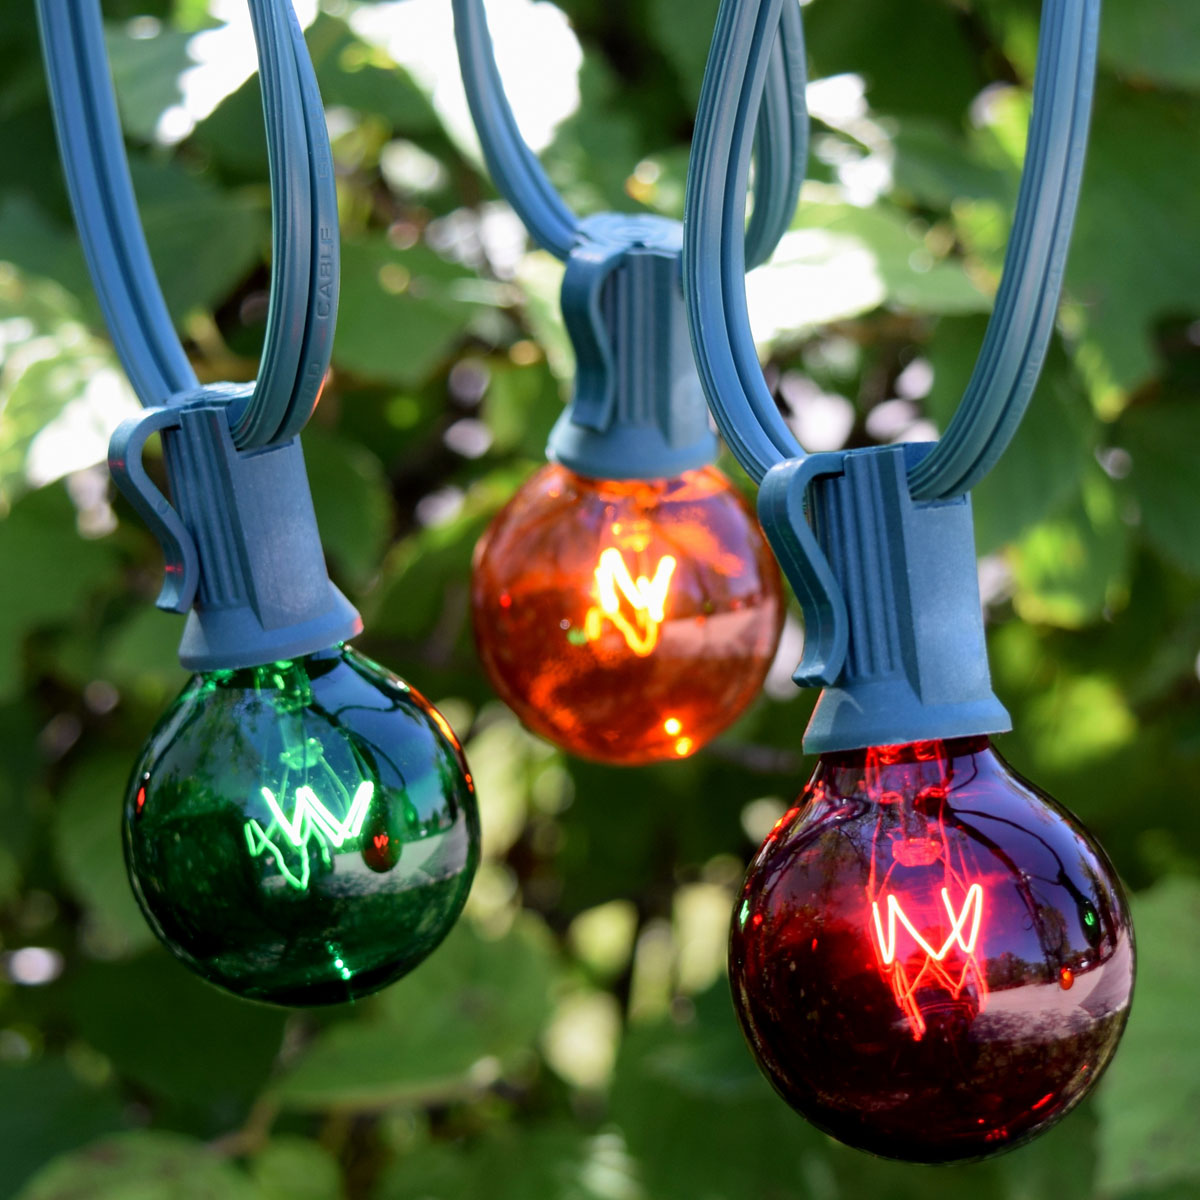 75 Foot Globe String Lights : Candelabra C7 Globe String Lights